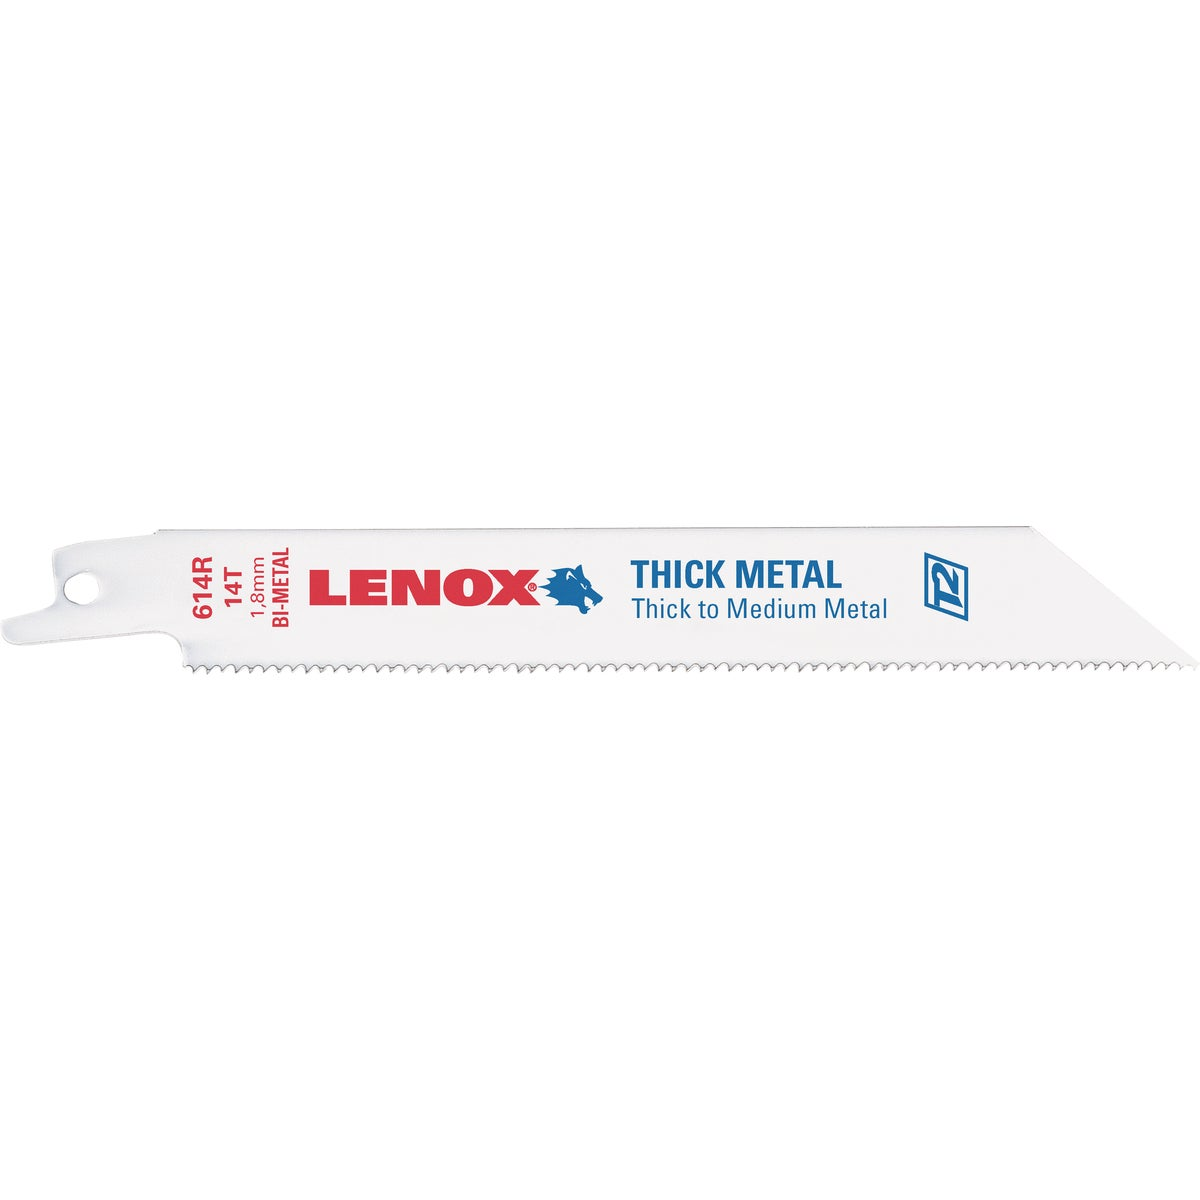 "6"" 14T RECIP SAW BLADE - 614R by Lenox"